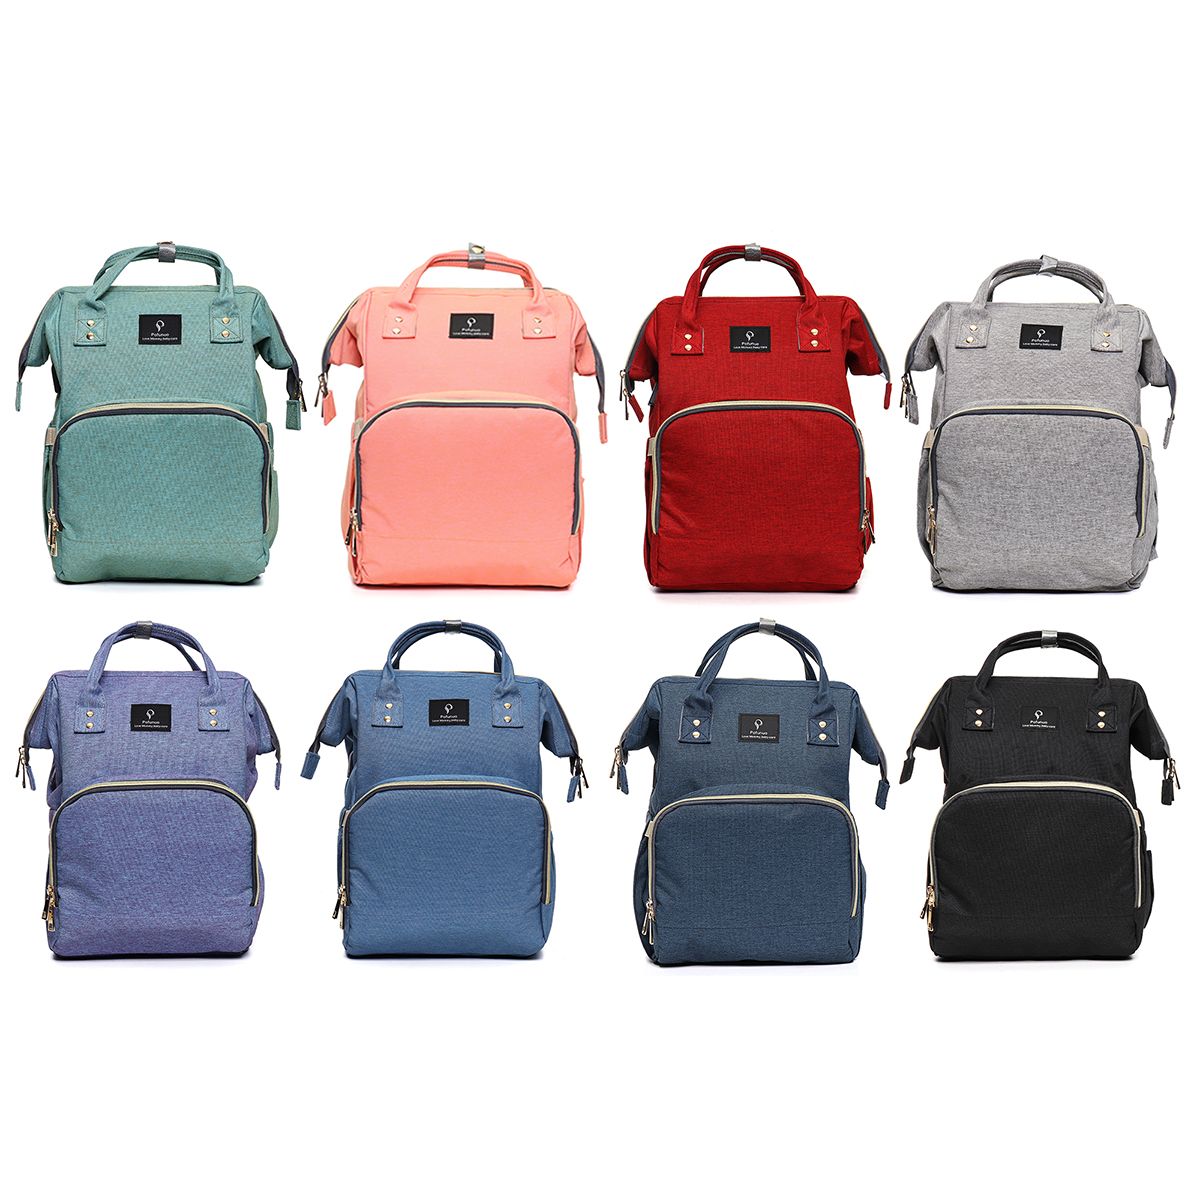 USB Charging Waterproof Oxford Baby Diaper Nappy Backpack Mummy Travel Bag